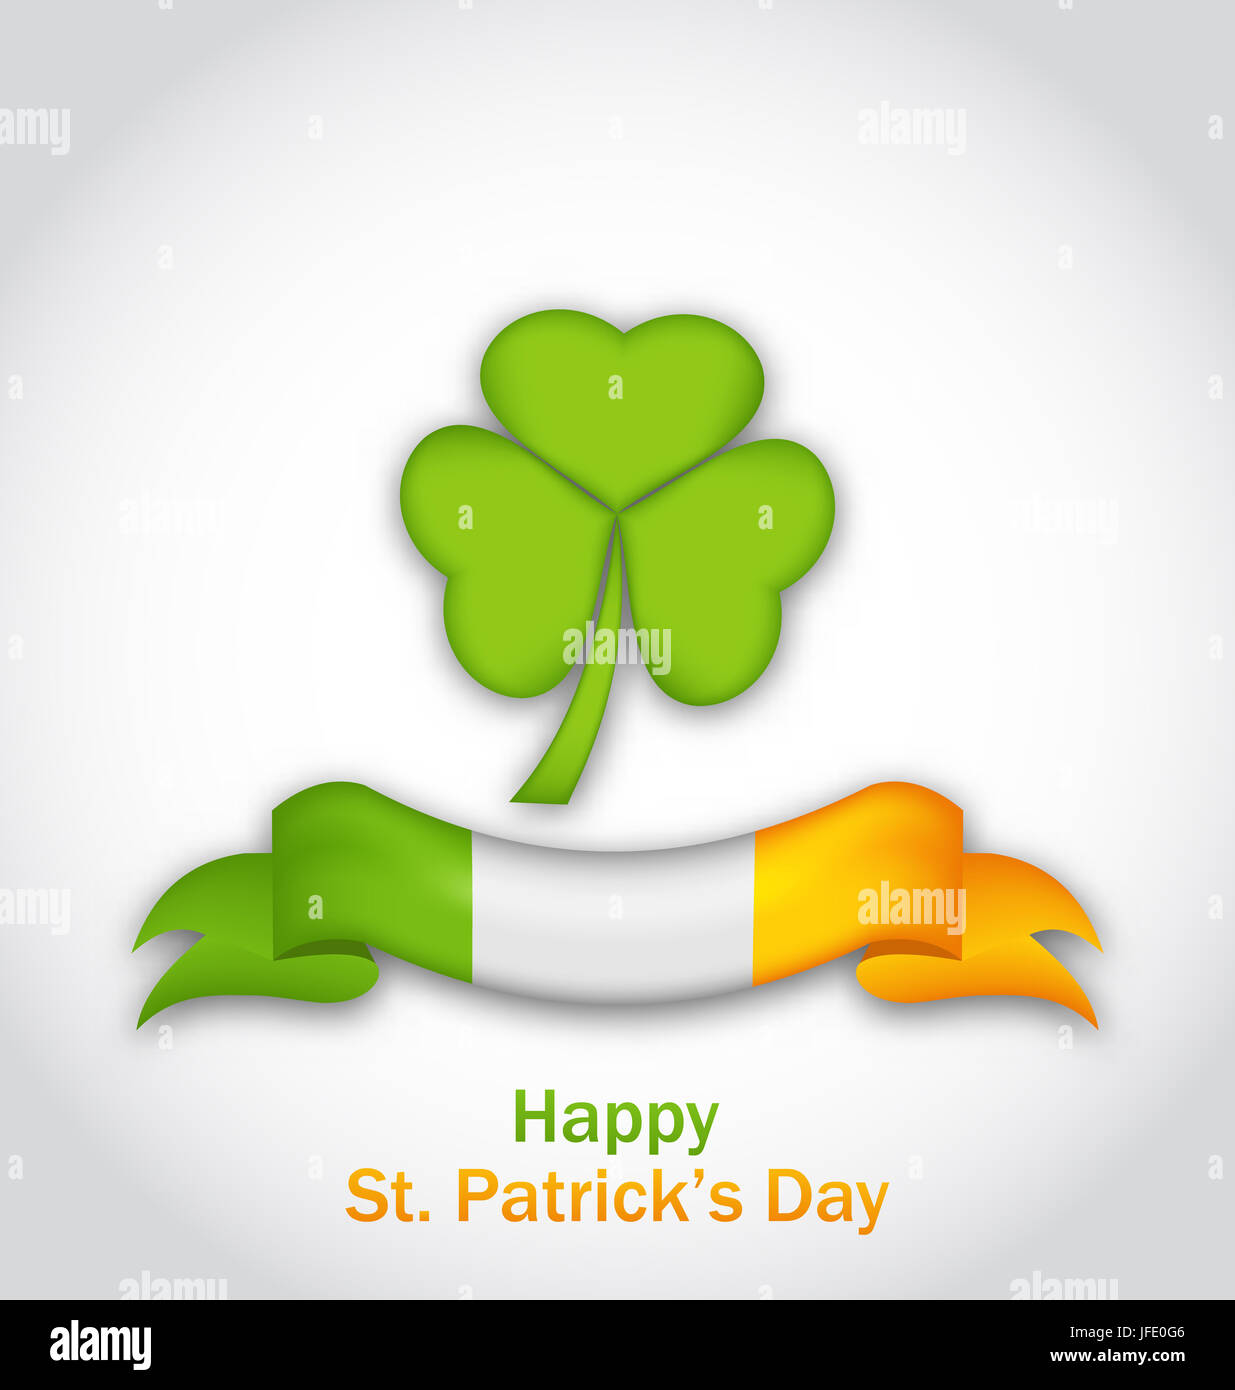 Illustration clover with ribbon in traditional Irish flag colors for St. Patrick's Day - Stock Photo